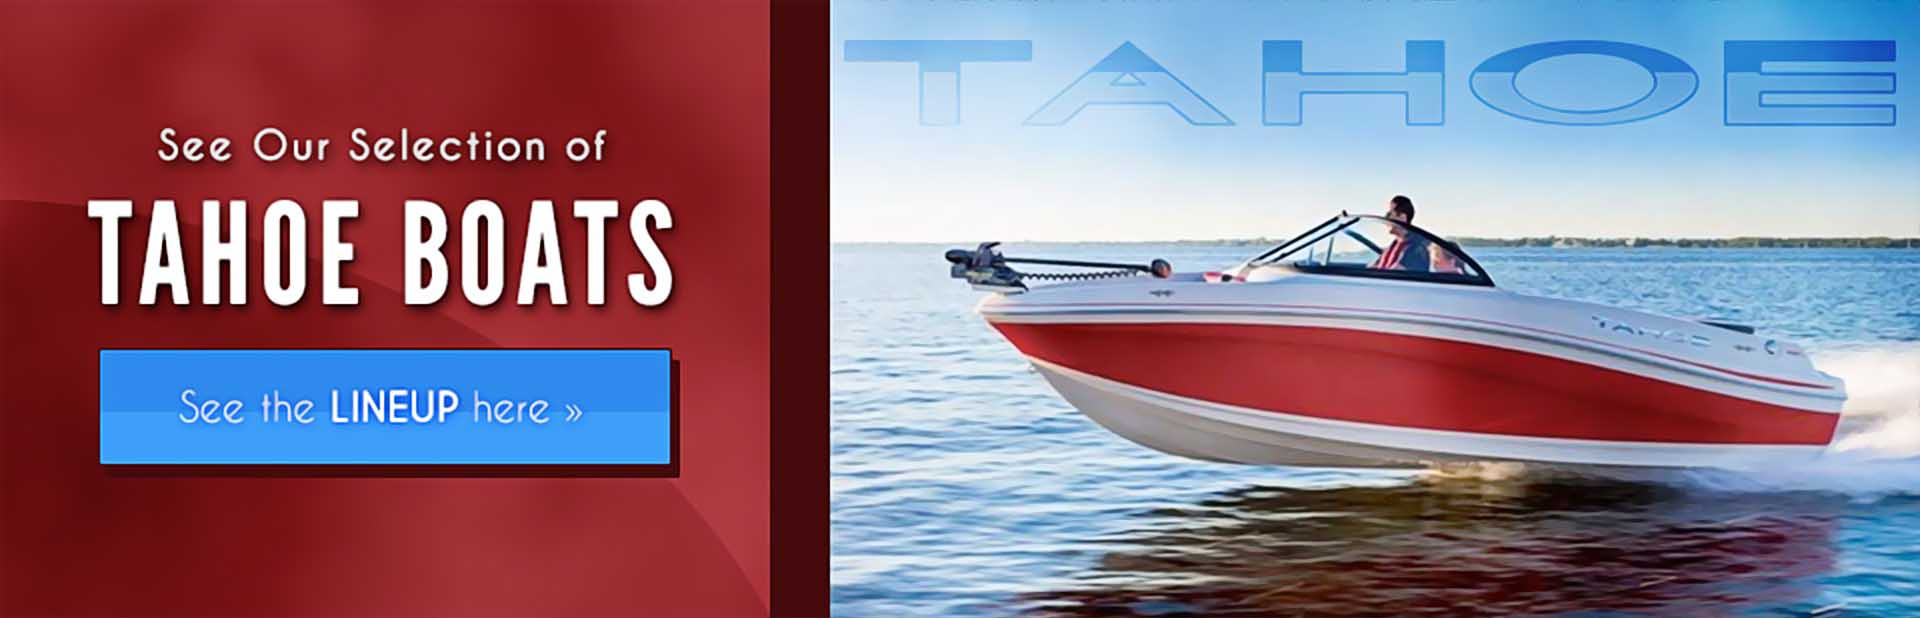 Tahoe Boats: Click here to view the models.